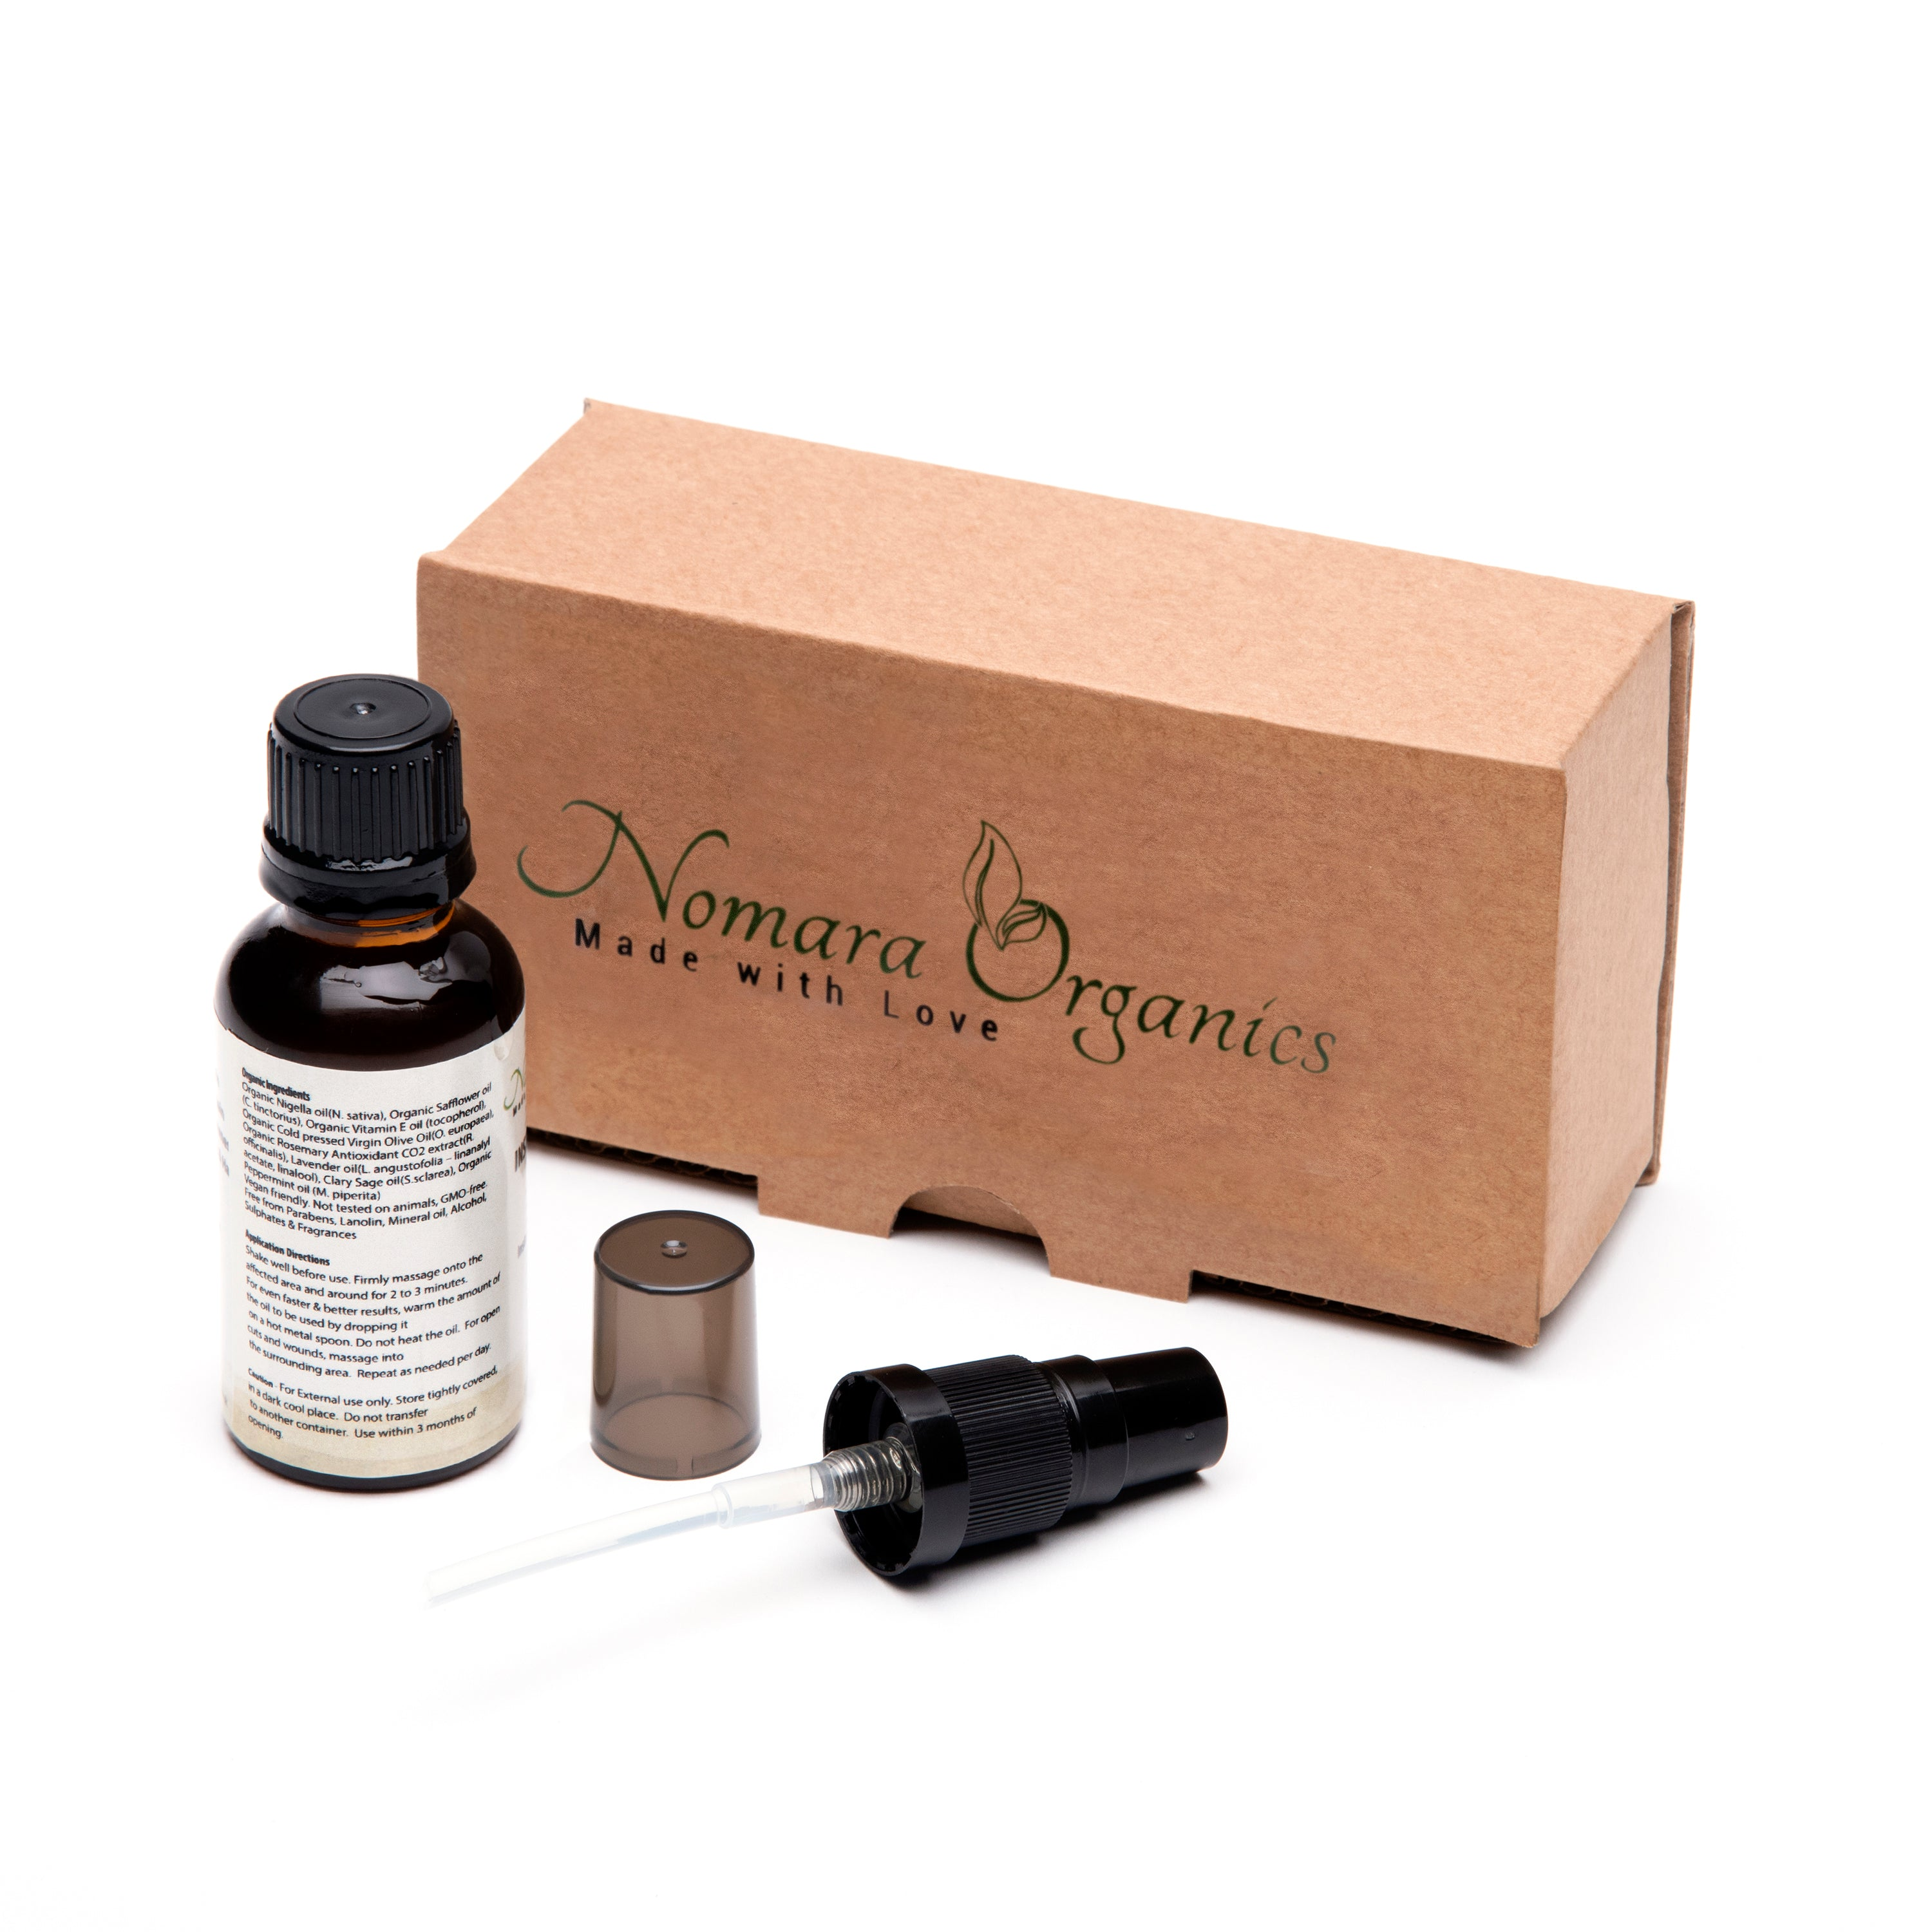 Nomara Organics INSTANT PAIN RELIEF OIL -Organic Oil blend  For Aches & Pains. Instantly Dissolves the Pain Away